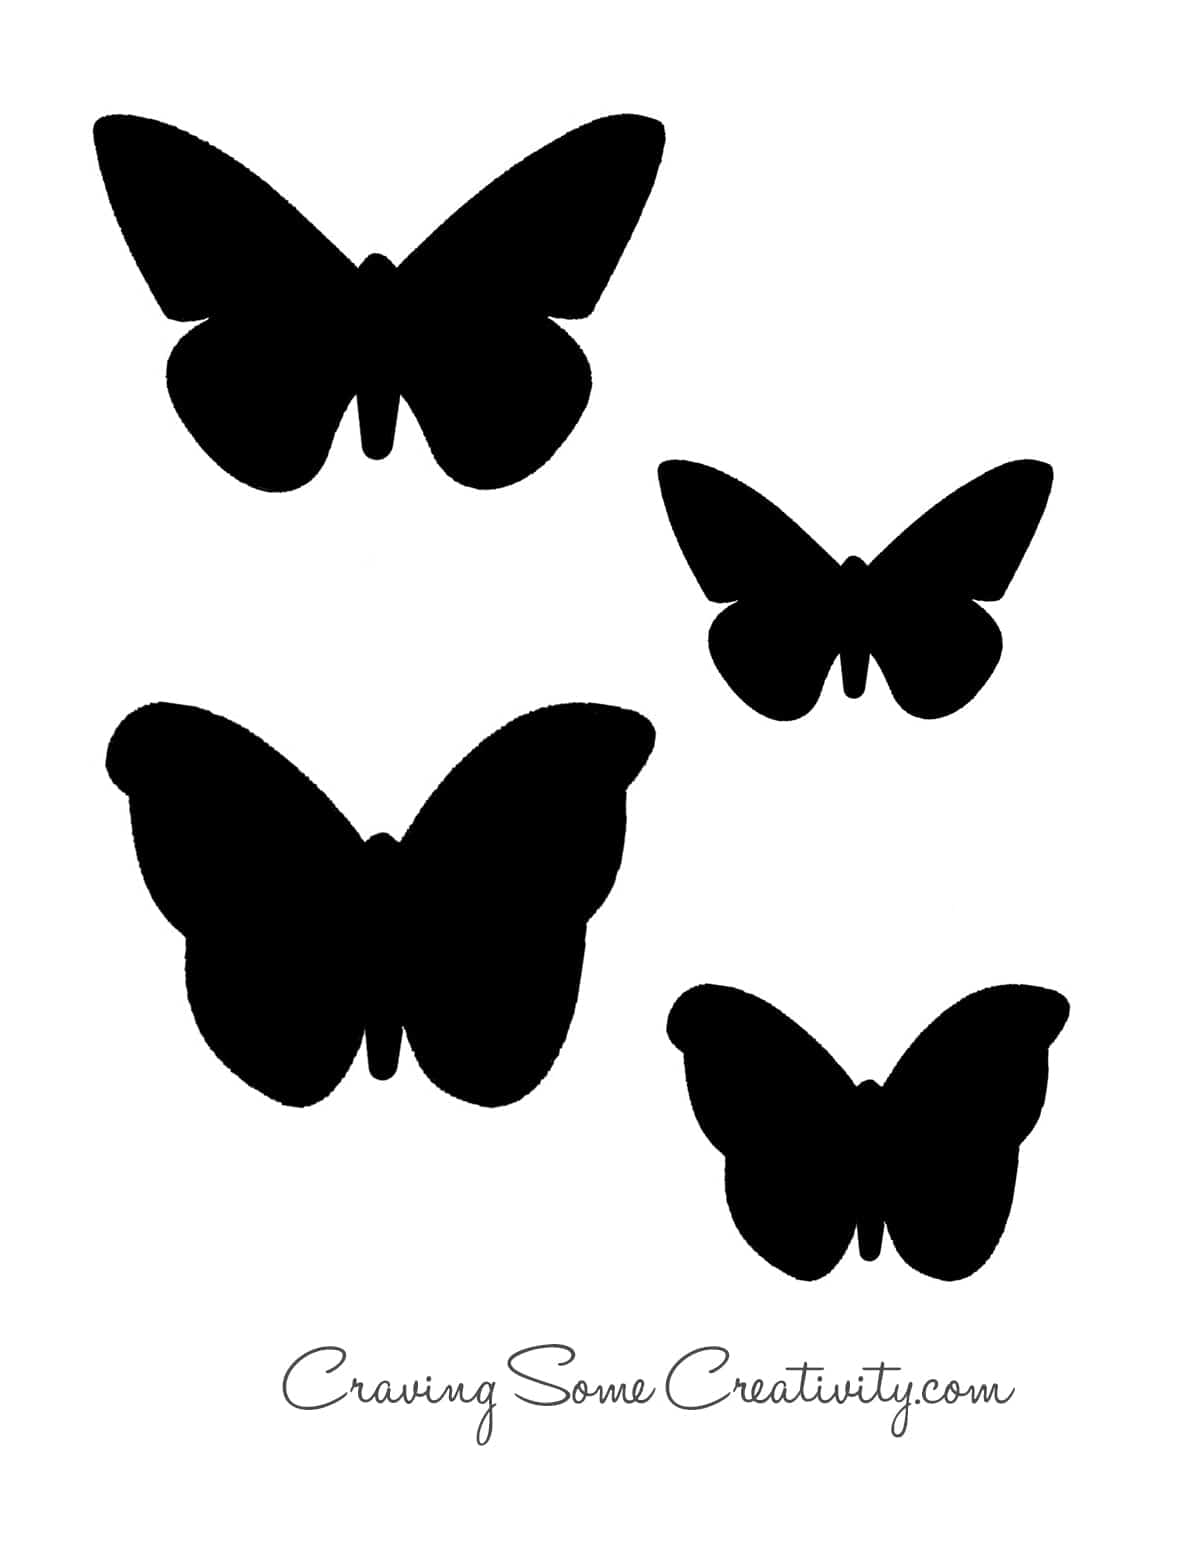 Printable butterfly template with black butterfly silhouettes.